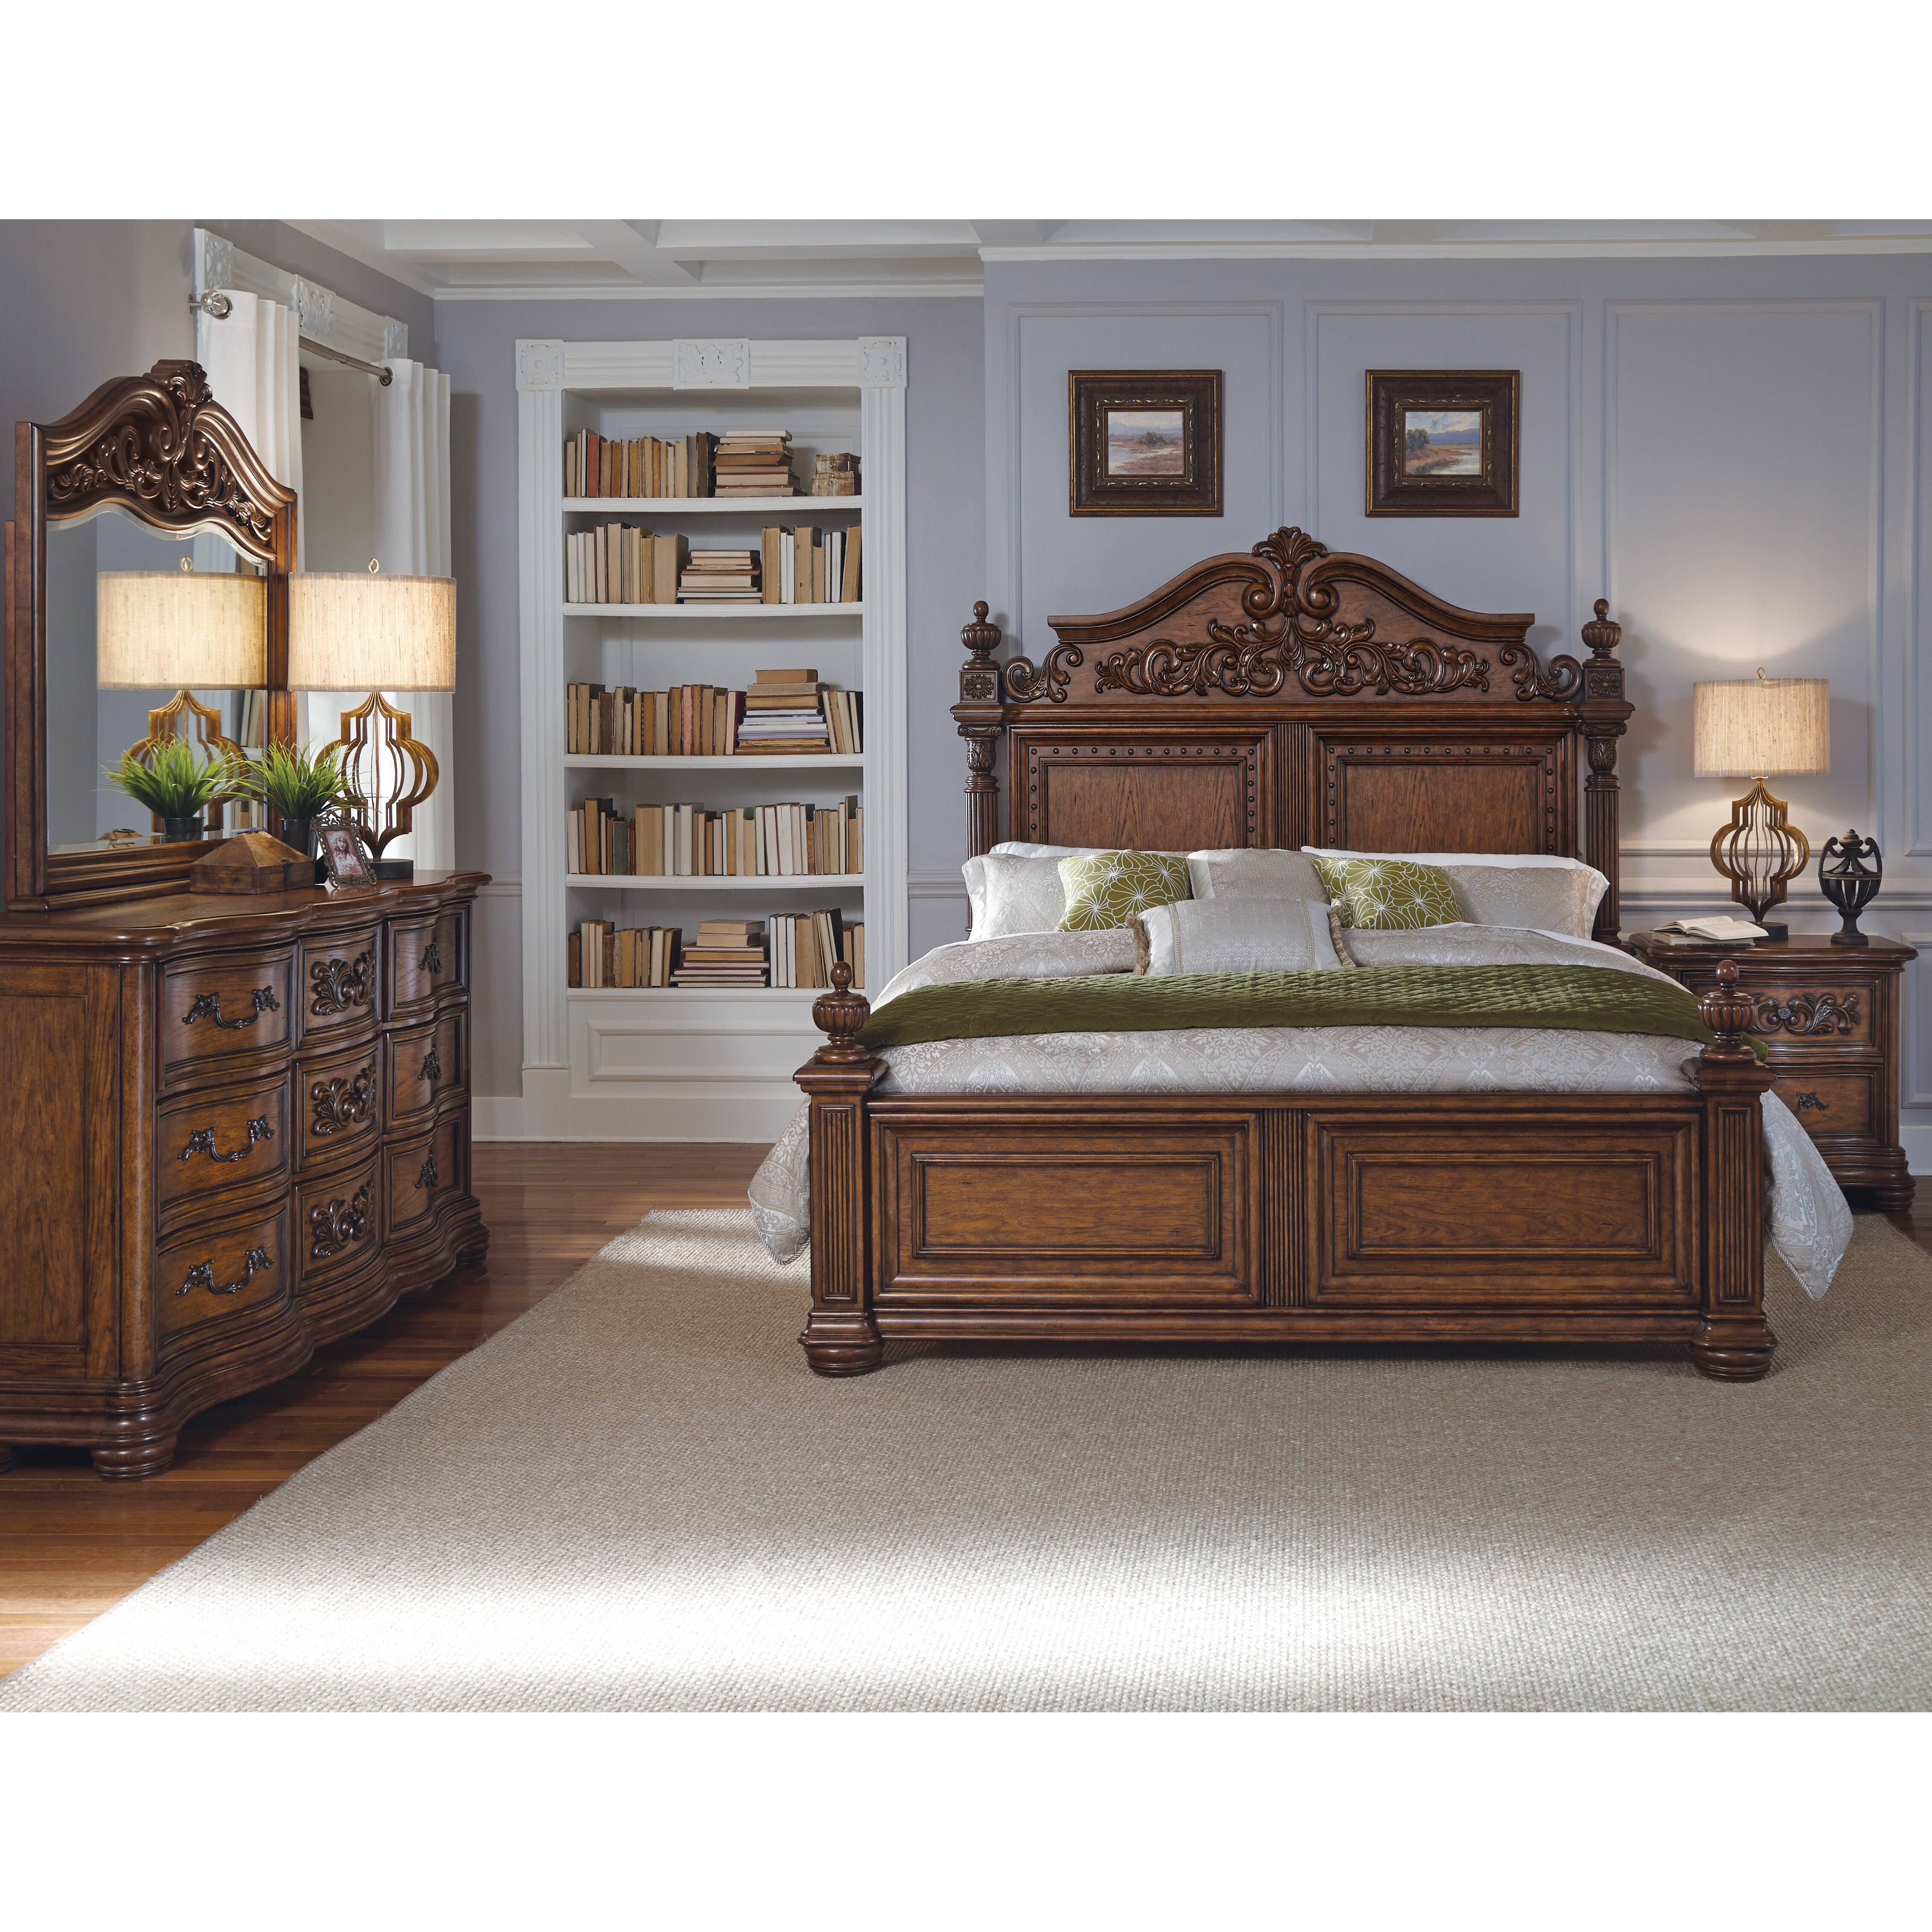 Pulaski cheswick four poster customizable bedroom set for Furniture 2 day shipping